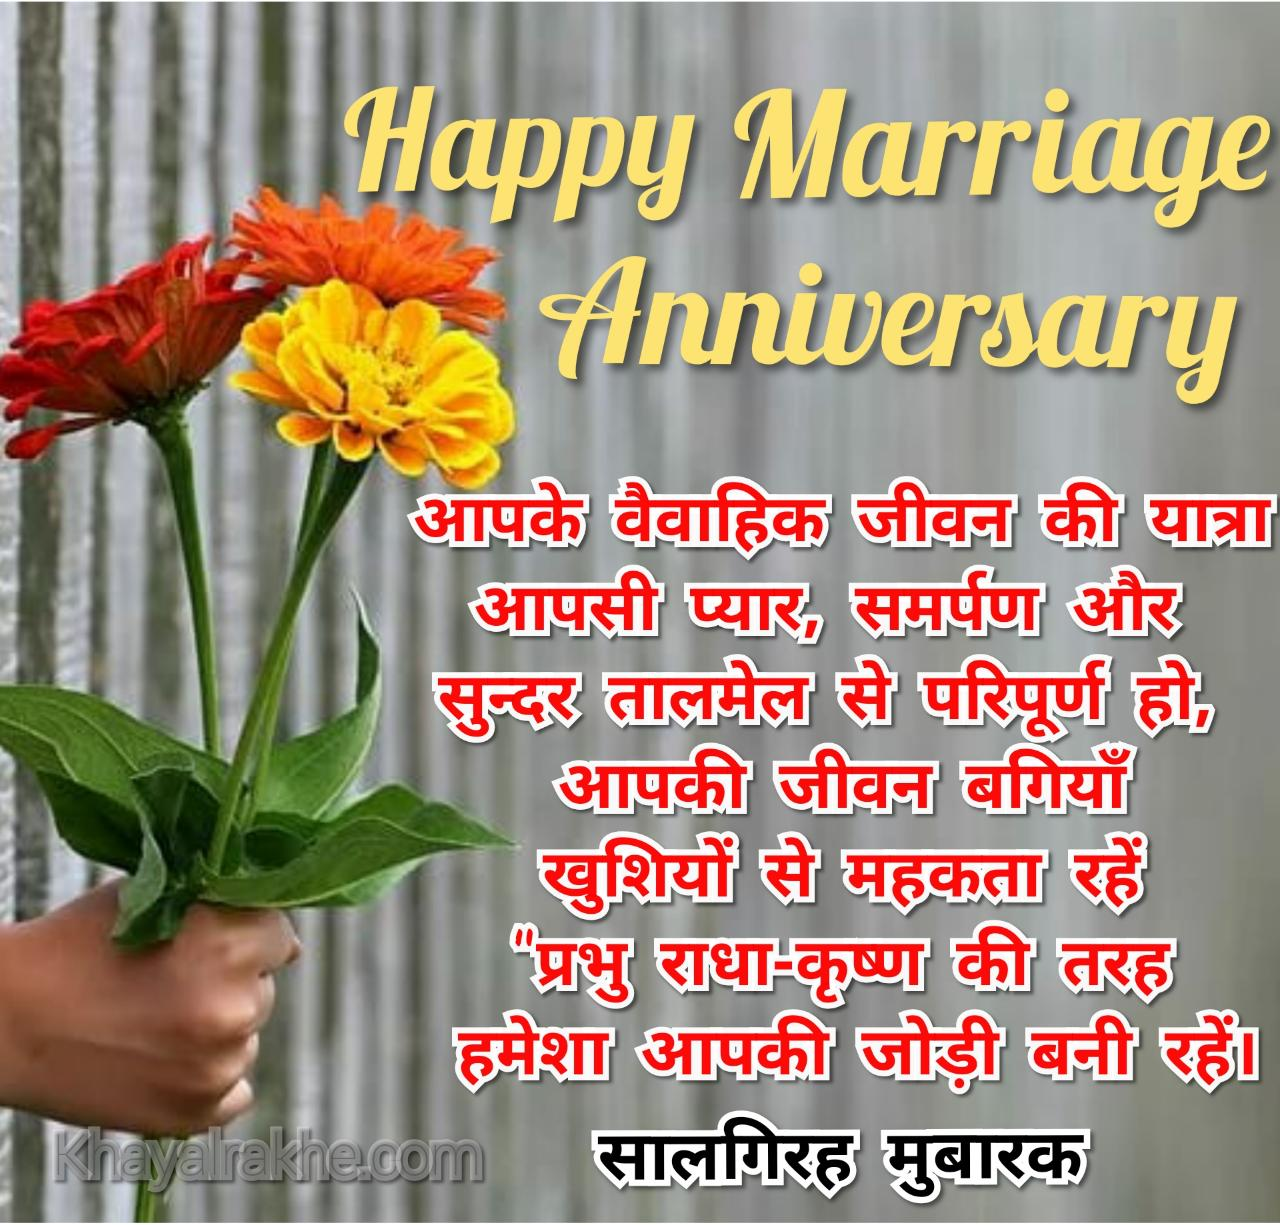 Happy Marriage Anniversary Best Status in Hindi